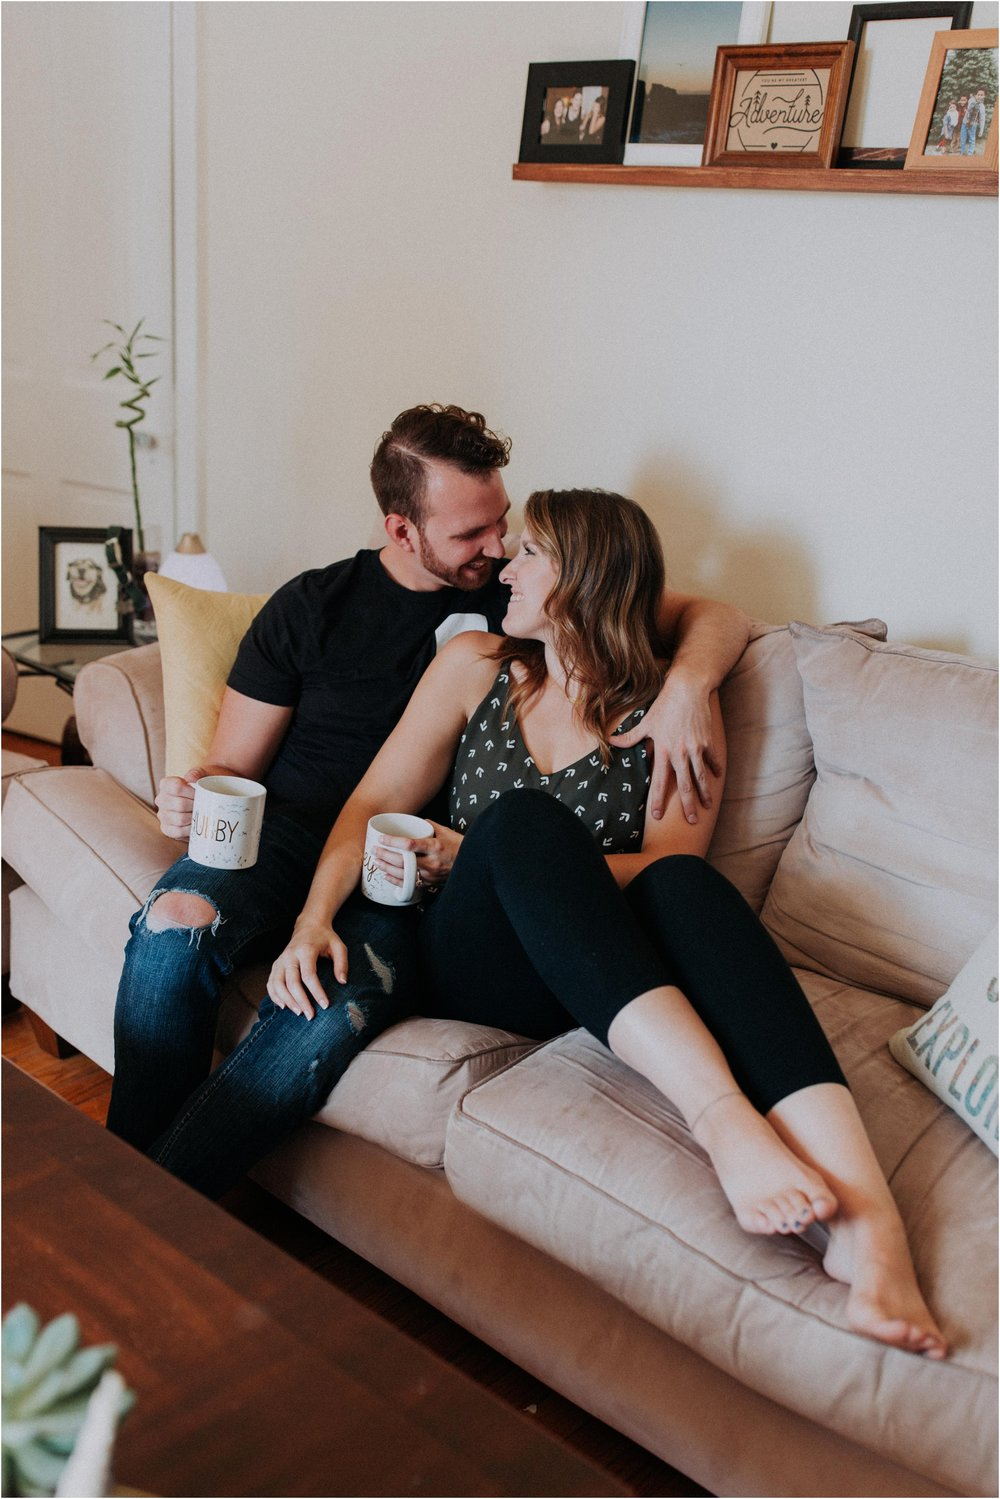 steph-reif-jordan-cox-in-home-lifestyle-engagement-session-hazel-lining-travel-wedding-elopement-photography_0063.jpg